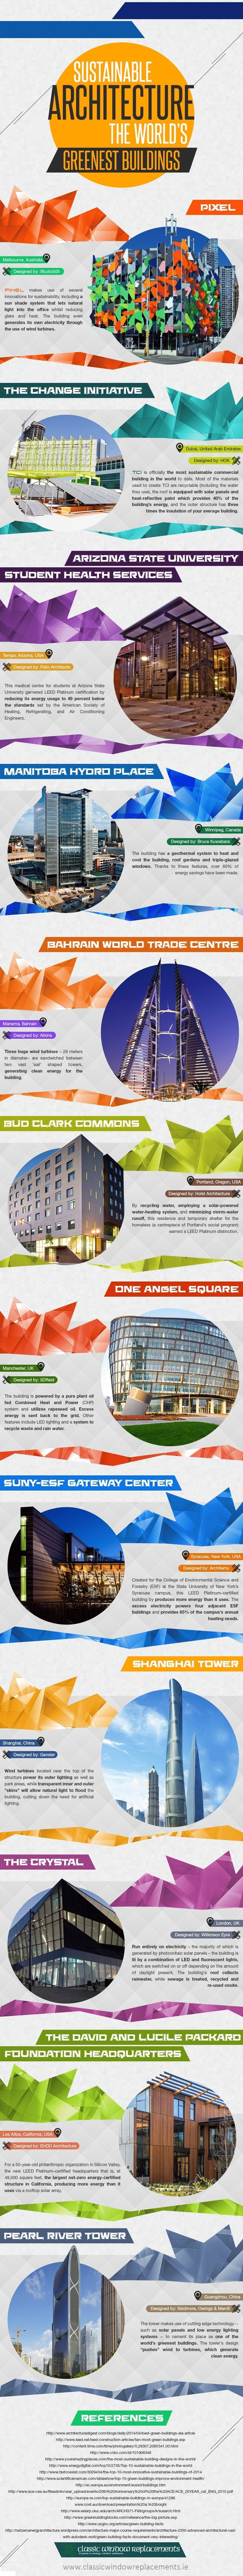 12 World Class Sustainable Building Designs Infographic